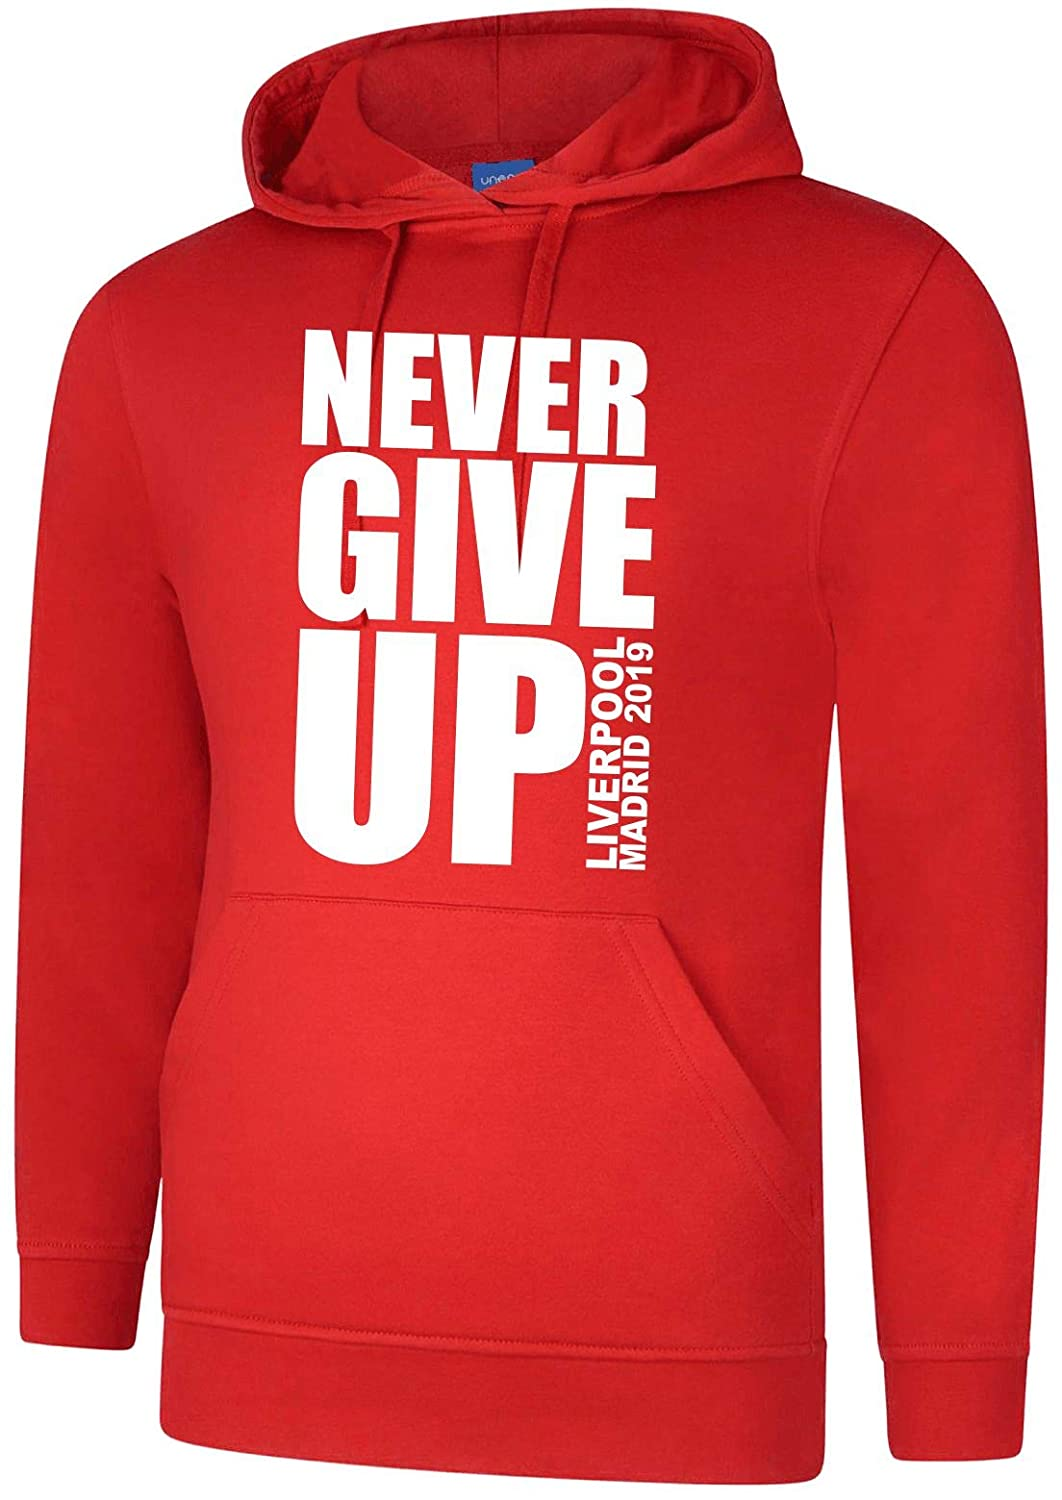 Never Give Up Liverpool Hoody-Champions Football League Mo Barcelona Hoody Salah Womens Mens Kids Madrid Final 2019 Style 3